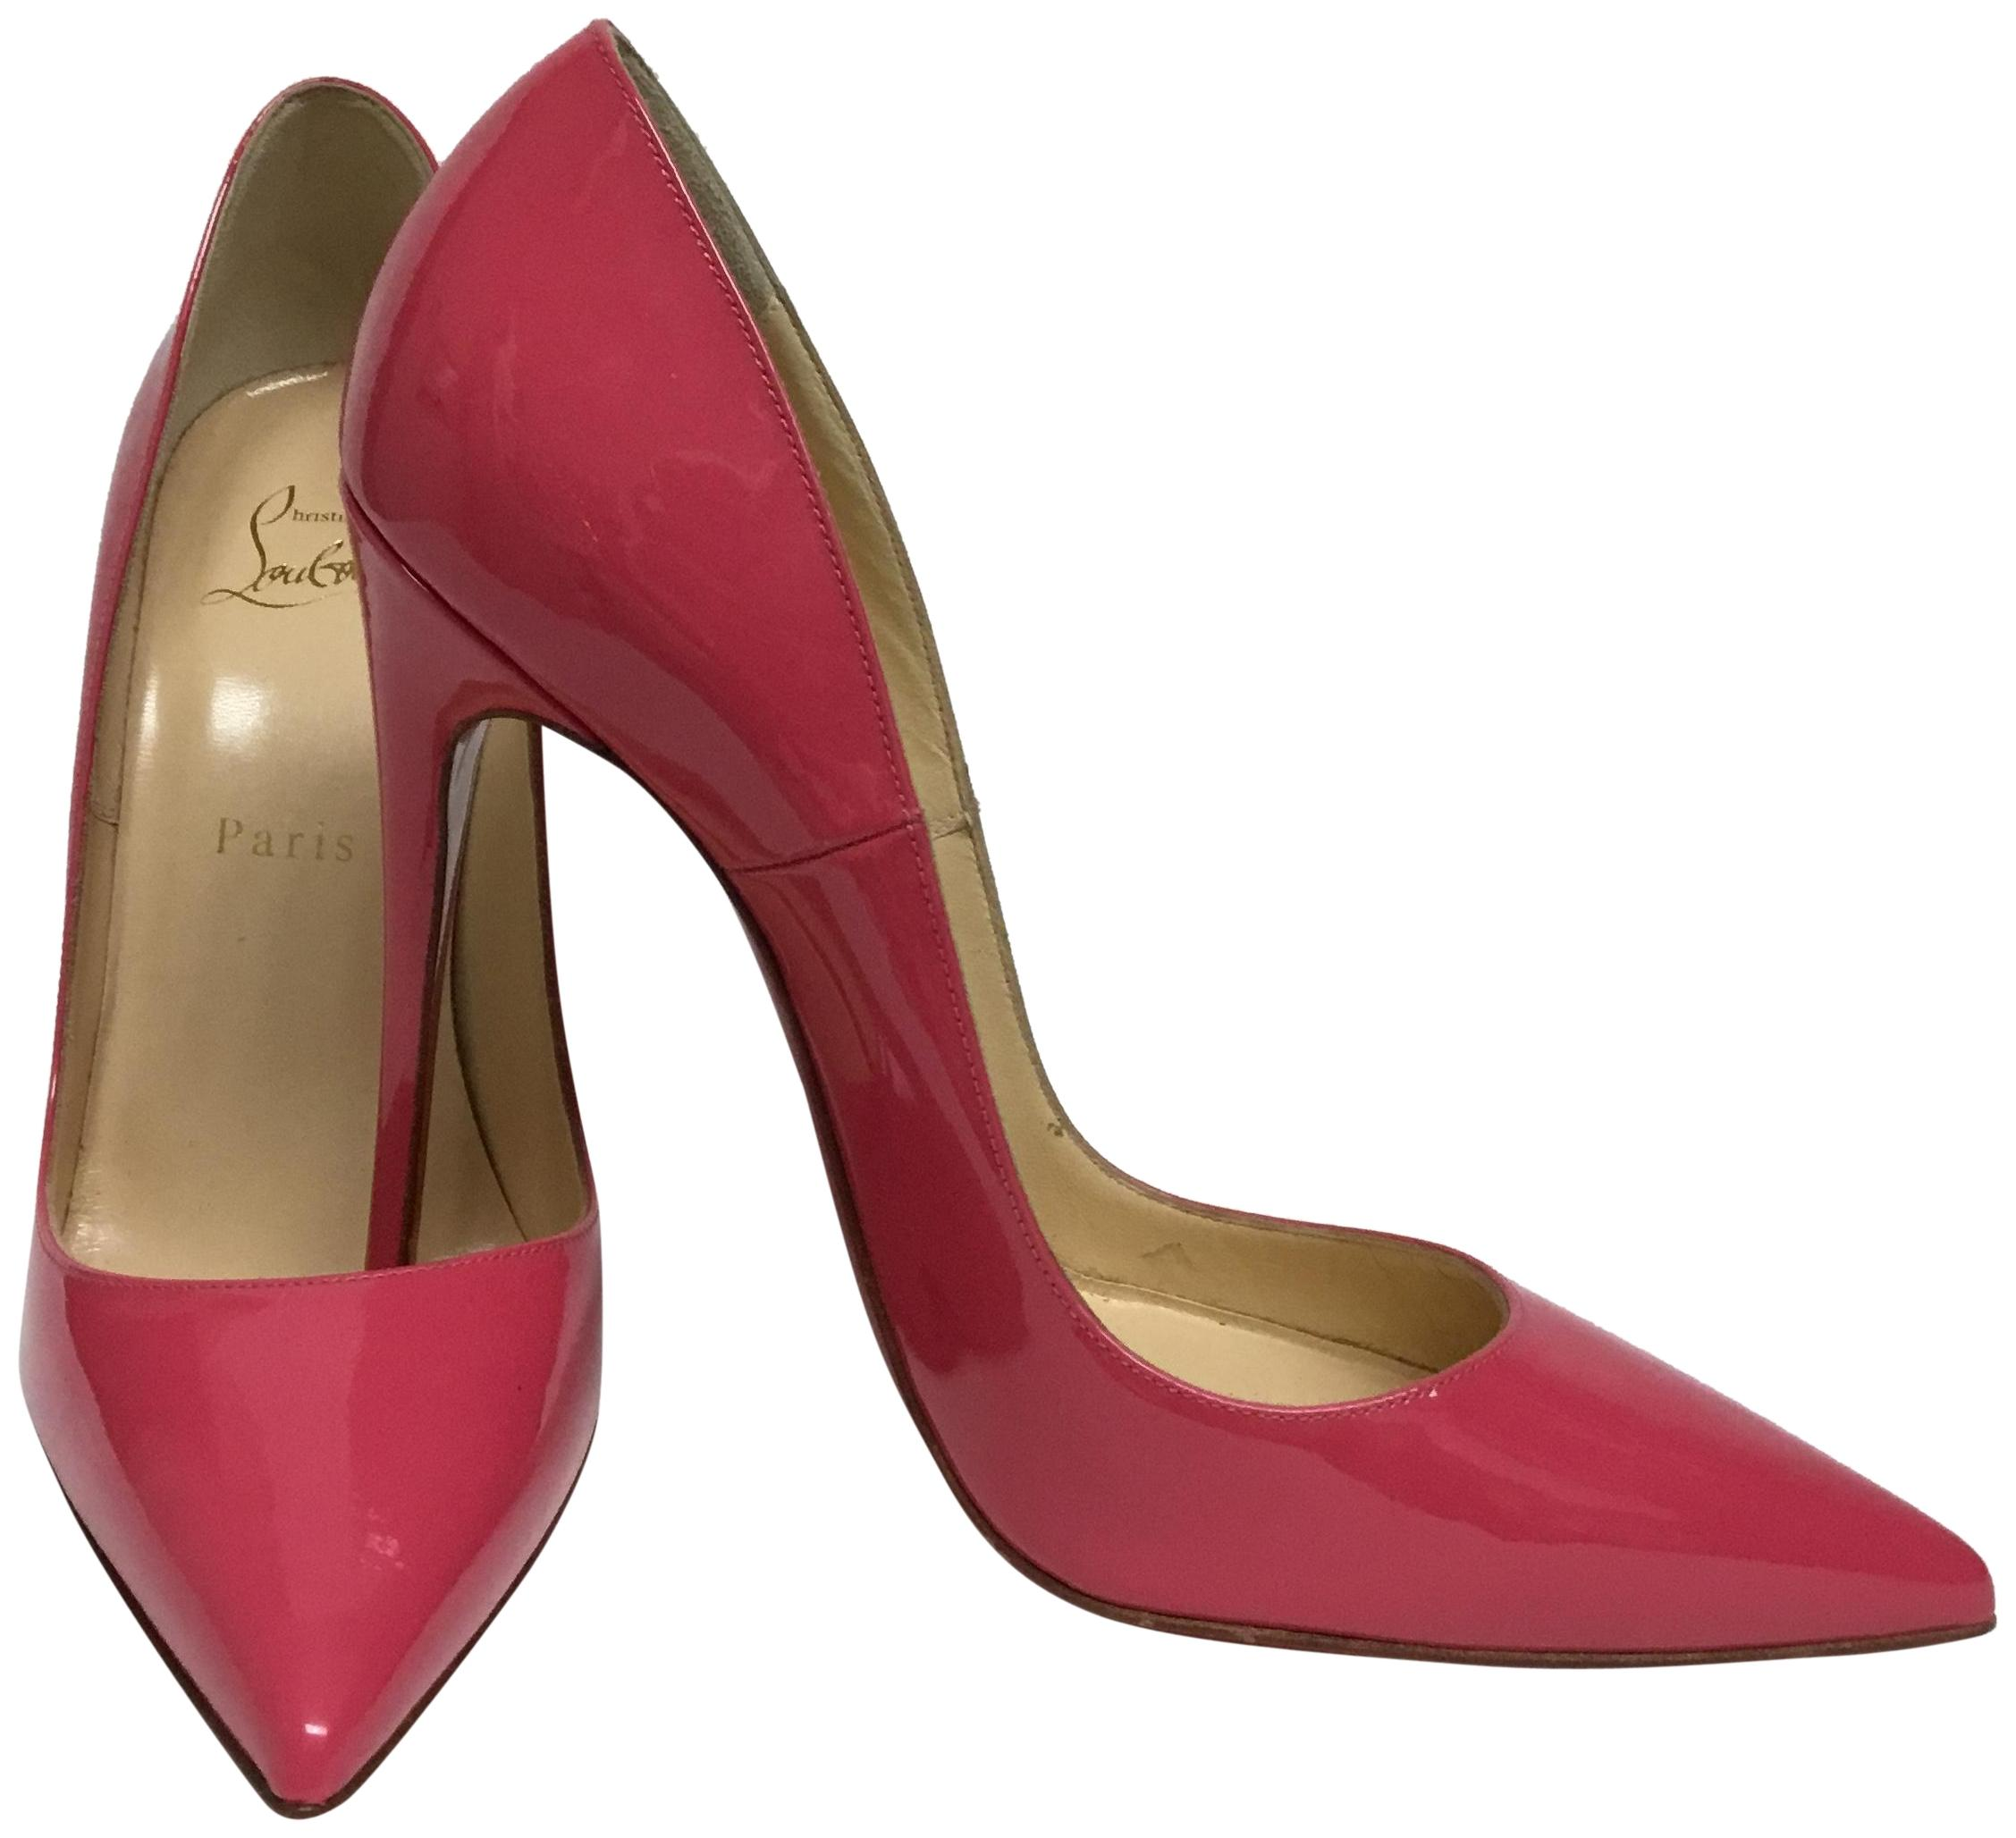 f35ec687859c Men s Women s   Christian Christian Christian Louboutin Pink Patent Leather  So Kate Pumps Size EU